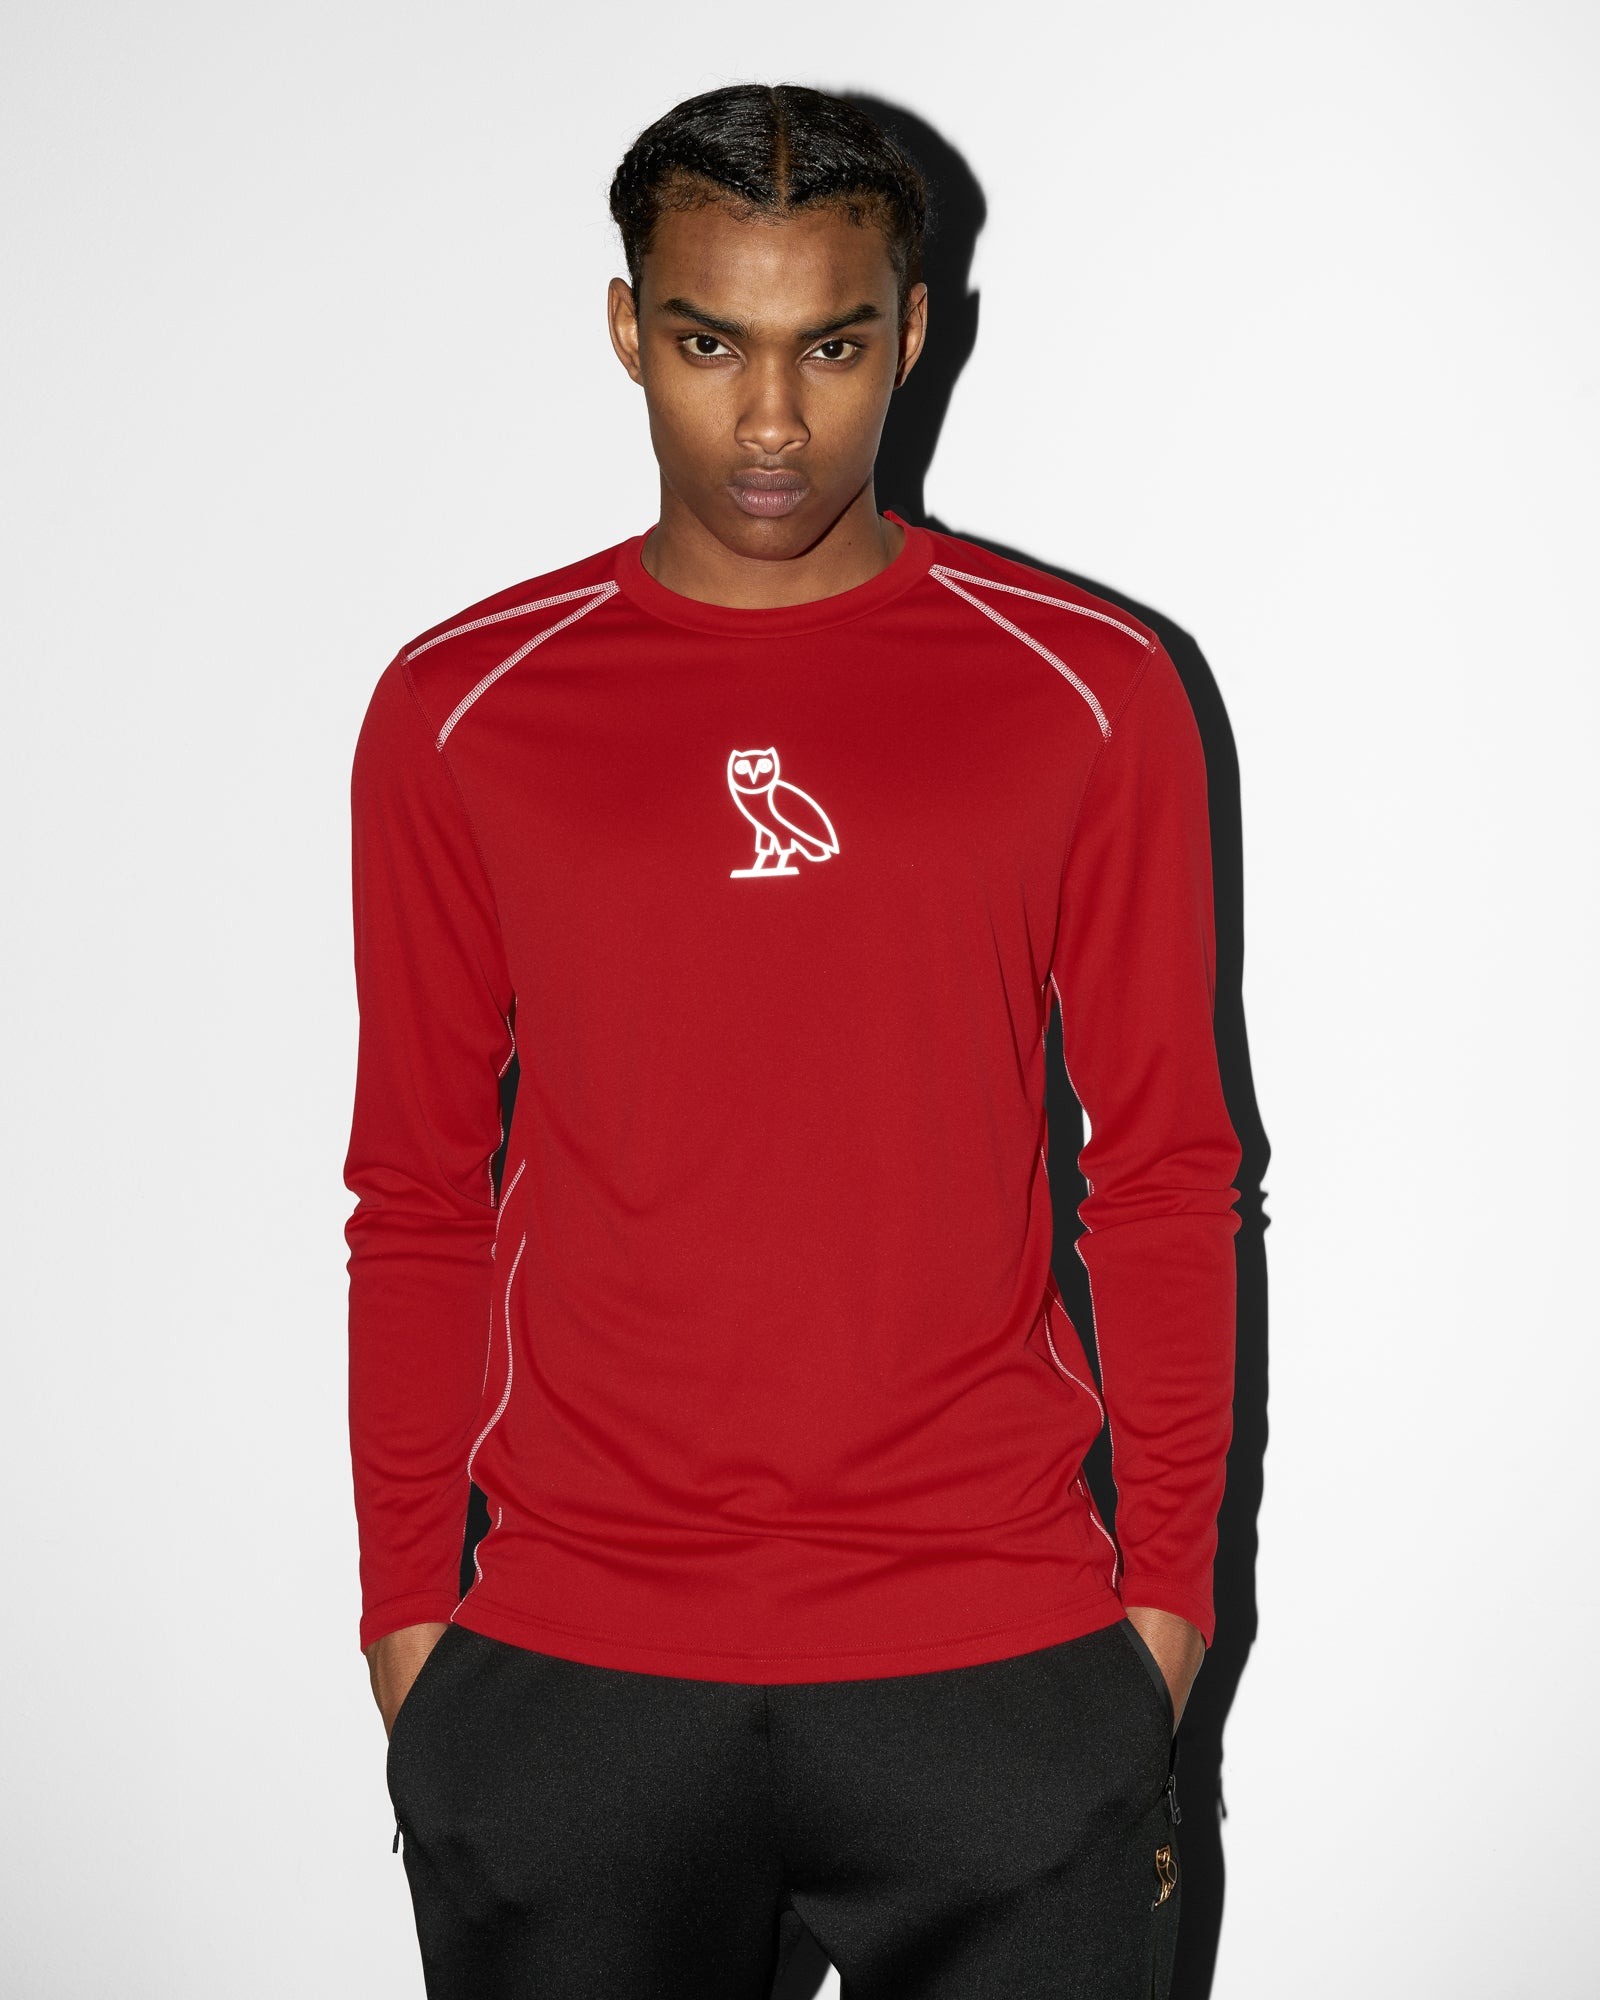 OVO OWL PERFORMANCE LONGSLEEVE T-SHIRT - RED IMAGE #2